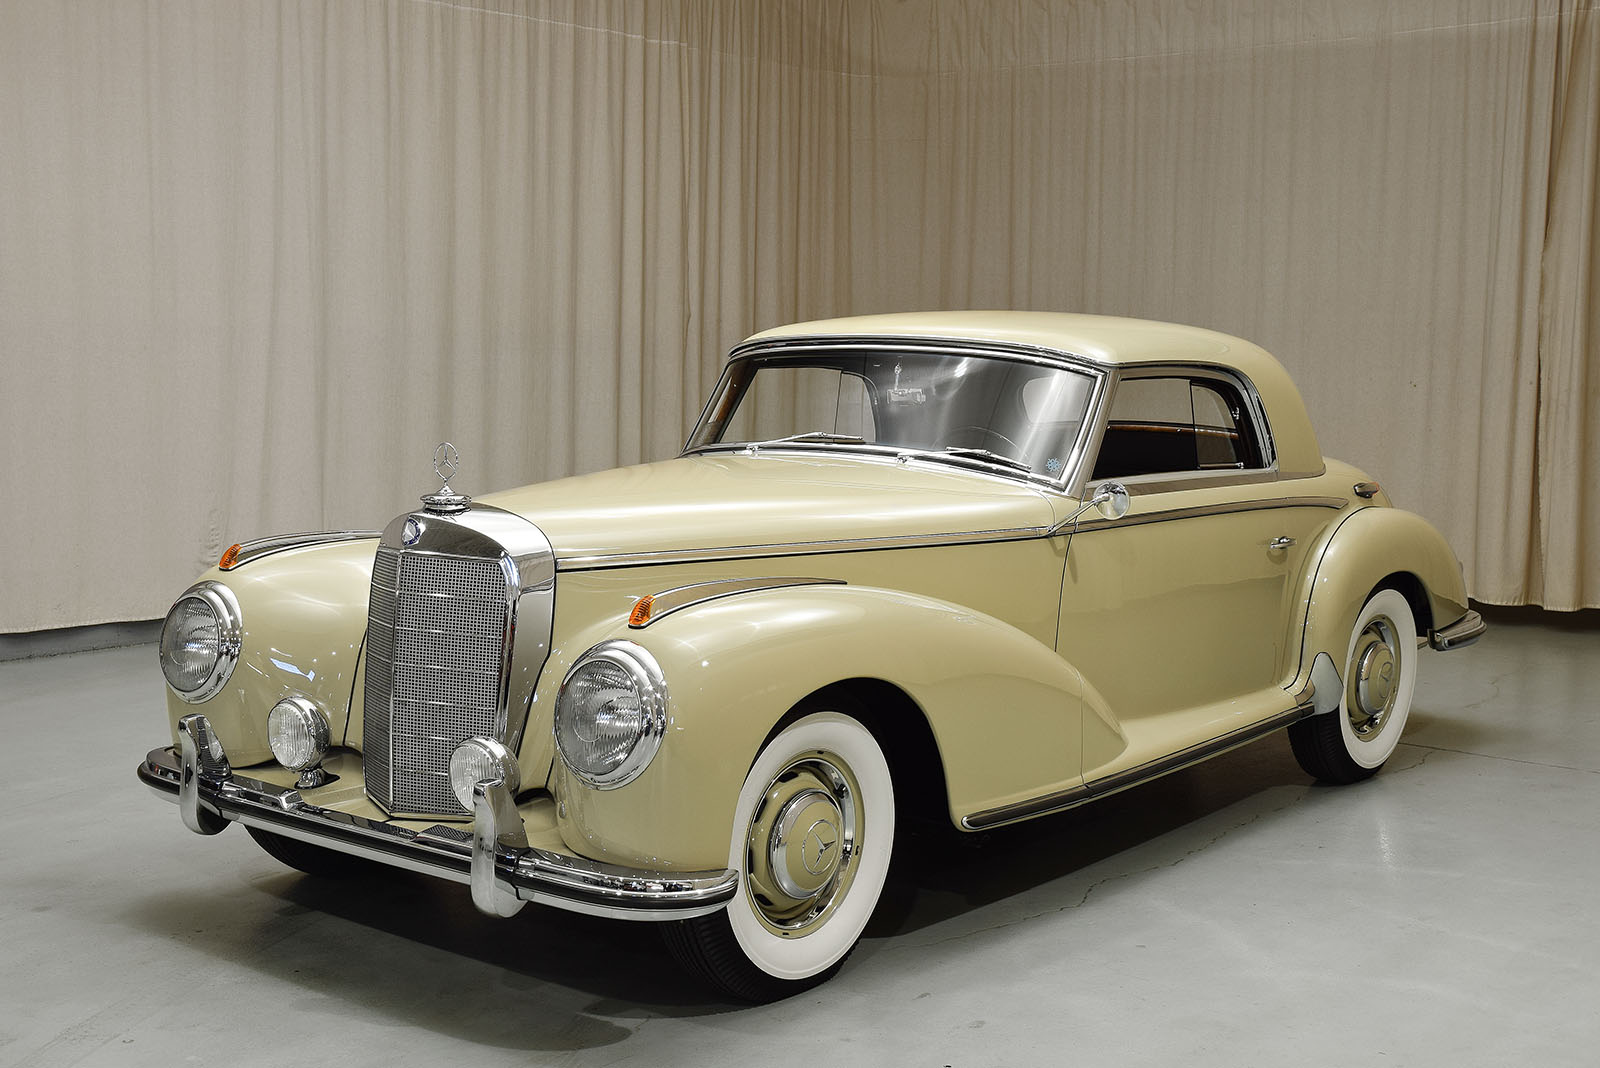 1954 mercedes benz 300s coupe hyman ltd classic cars for Mercedes benz 300s